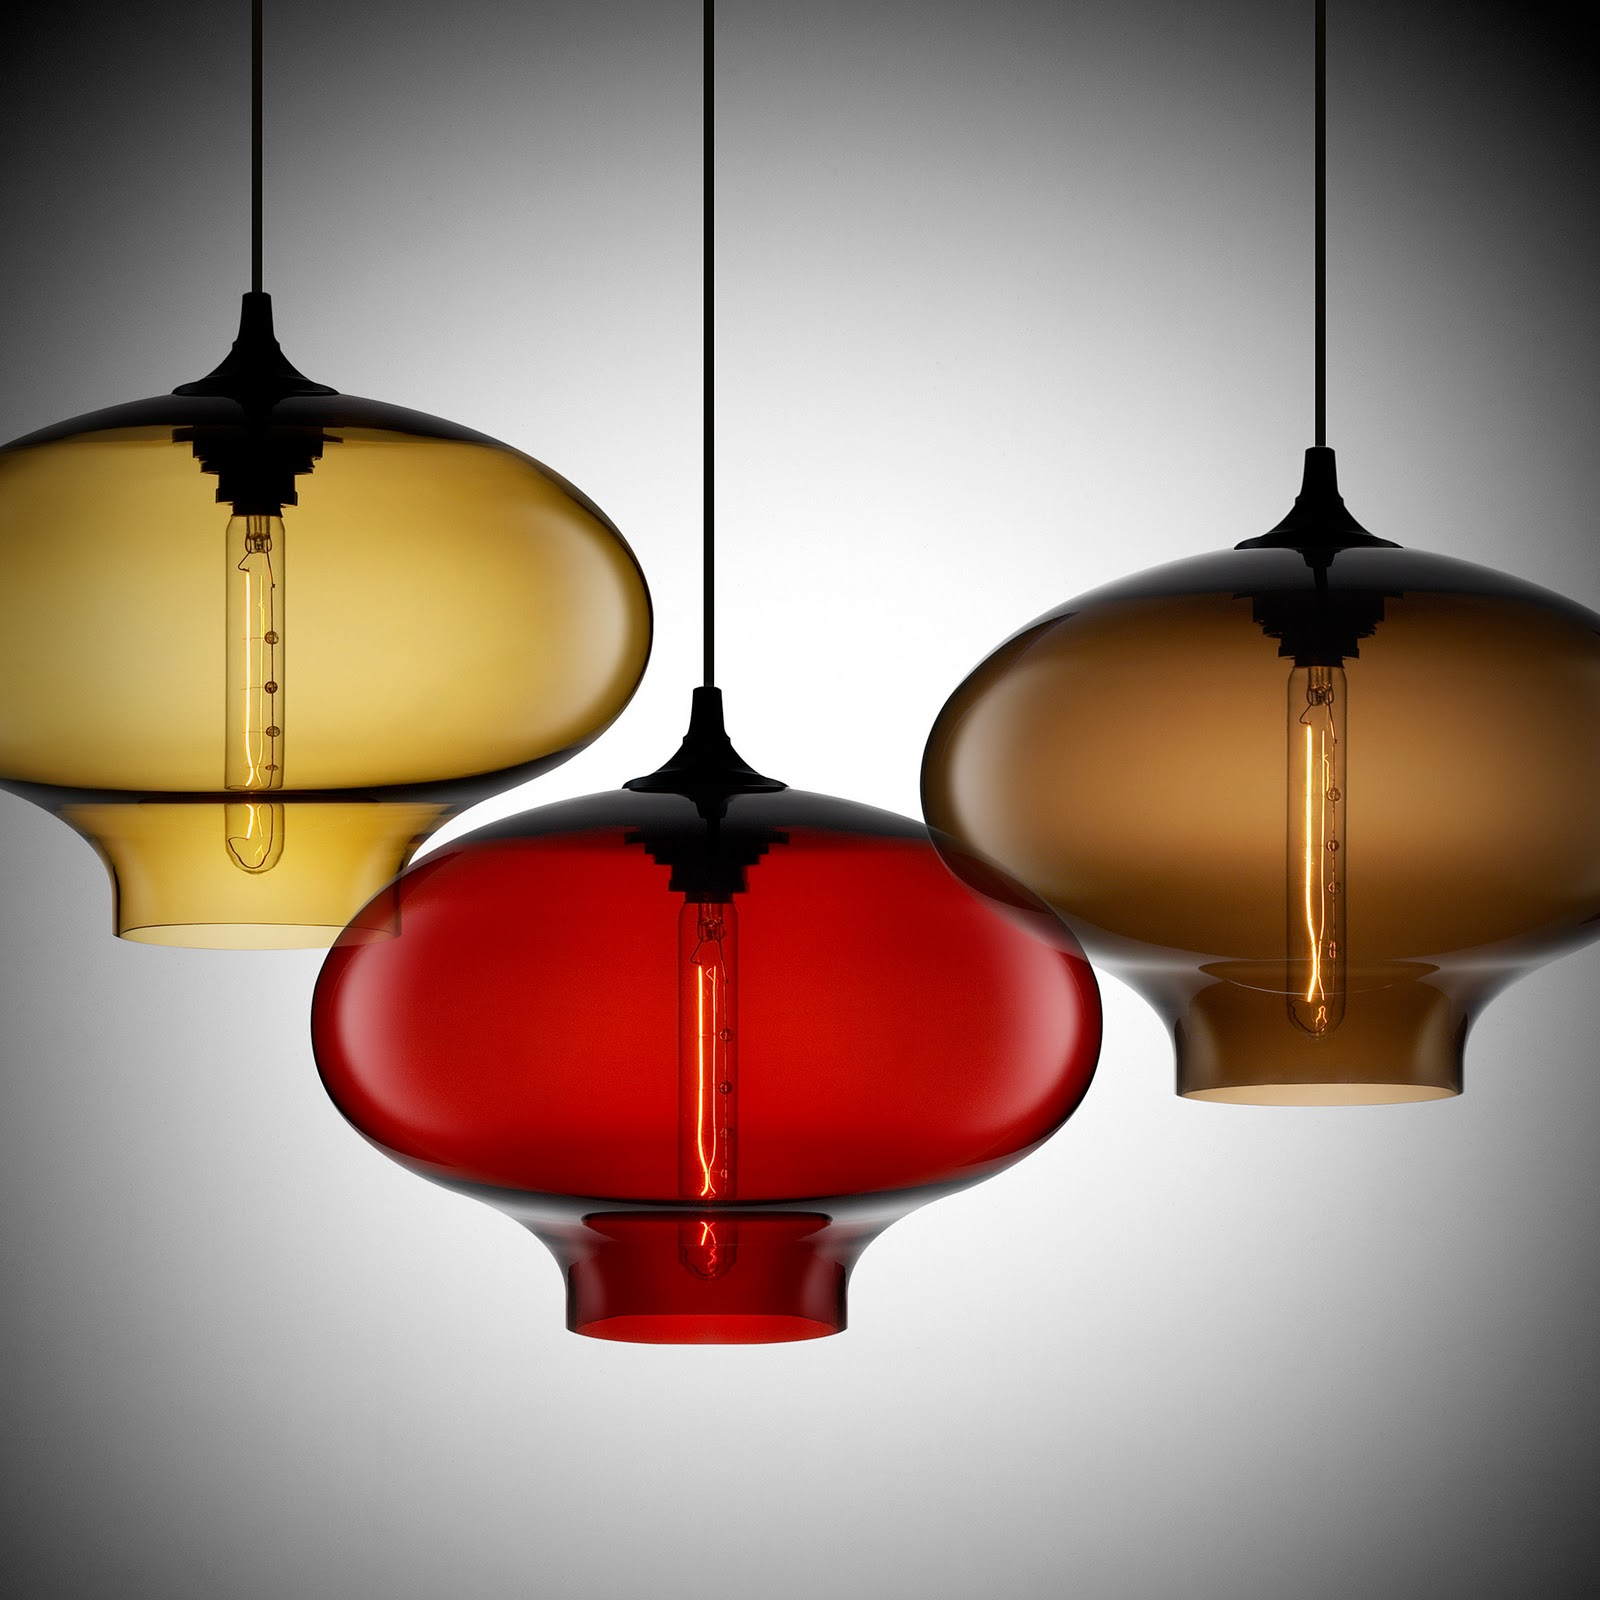 Artistic Pendant Lights